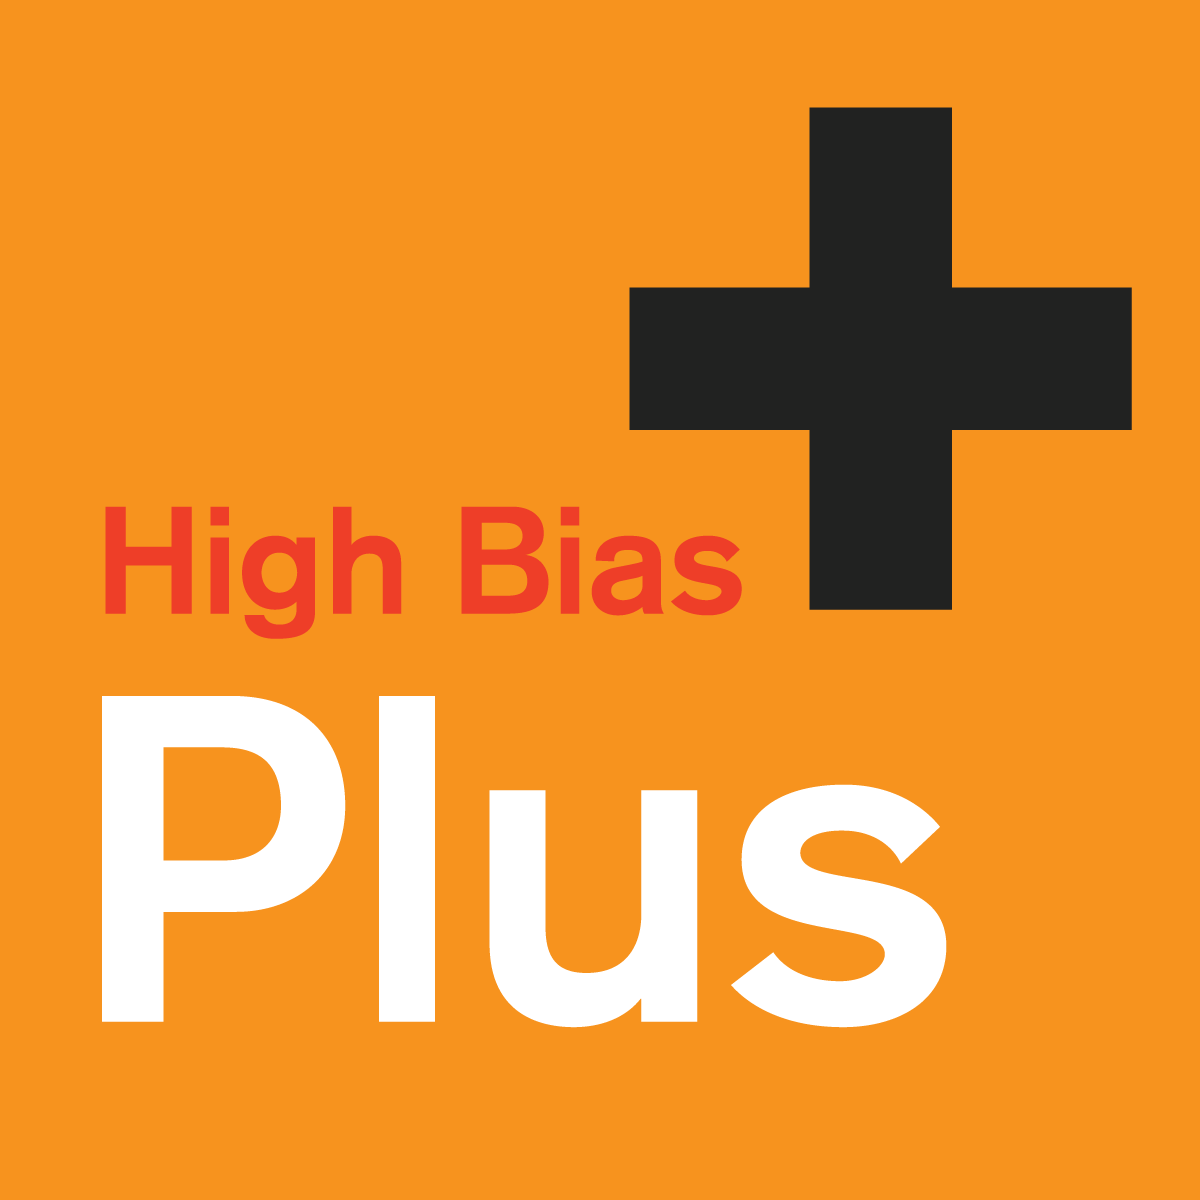 High Bias Plus